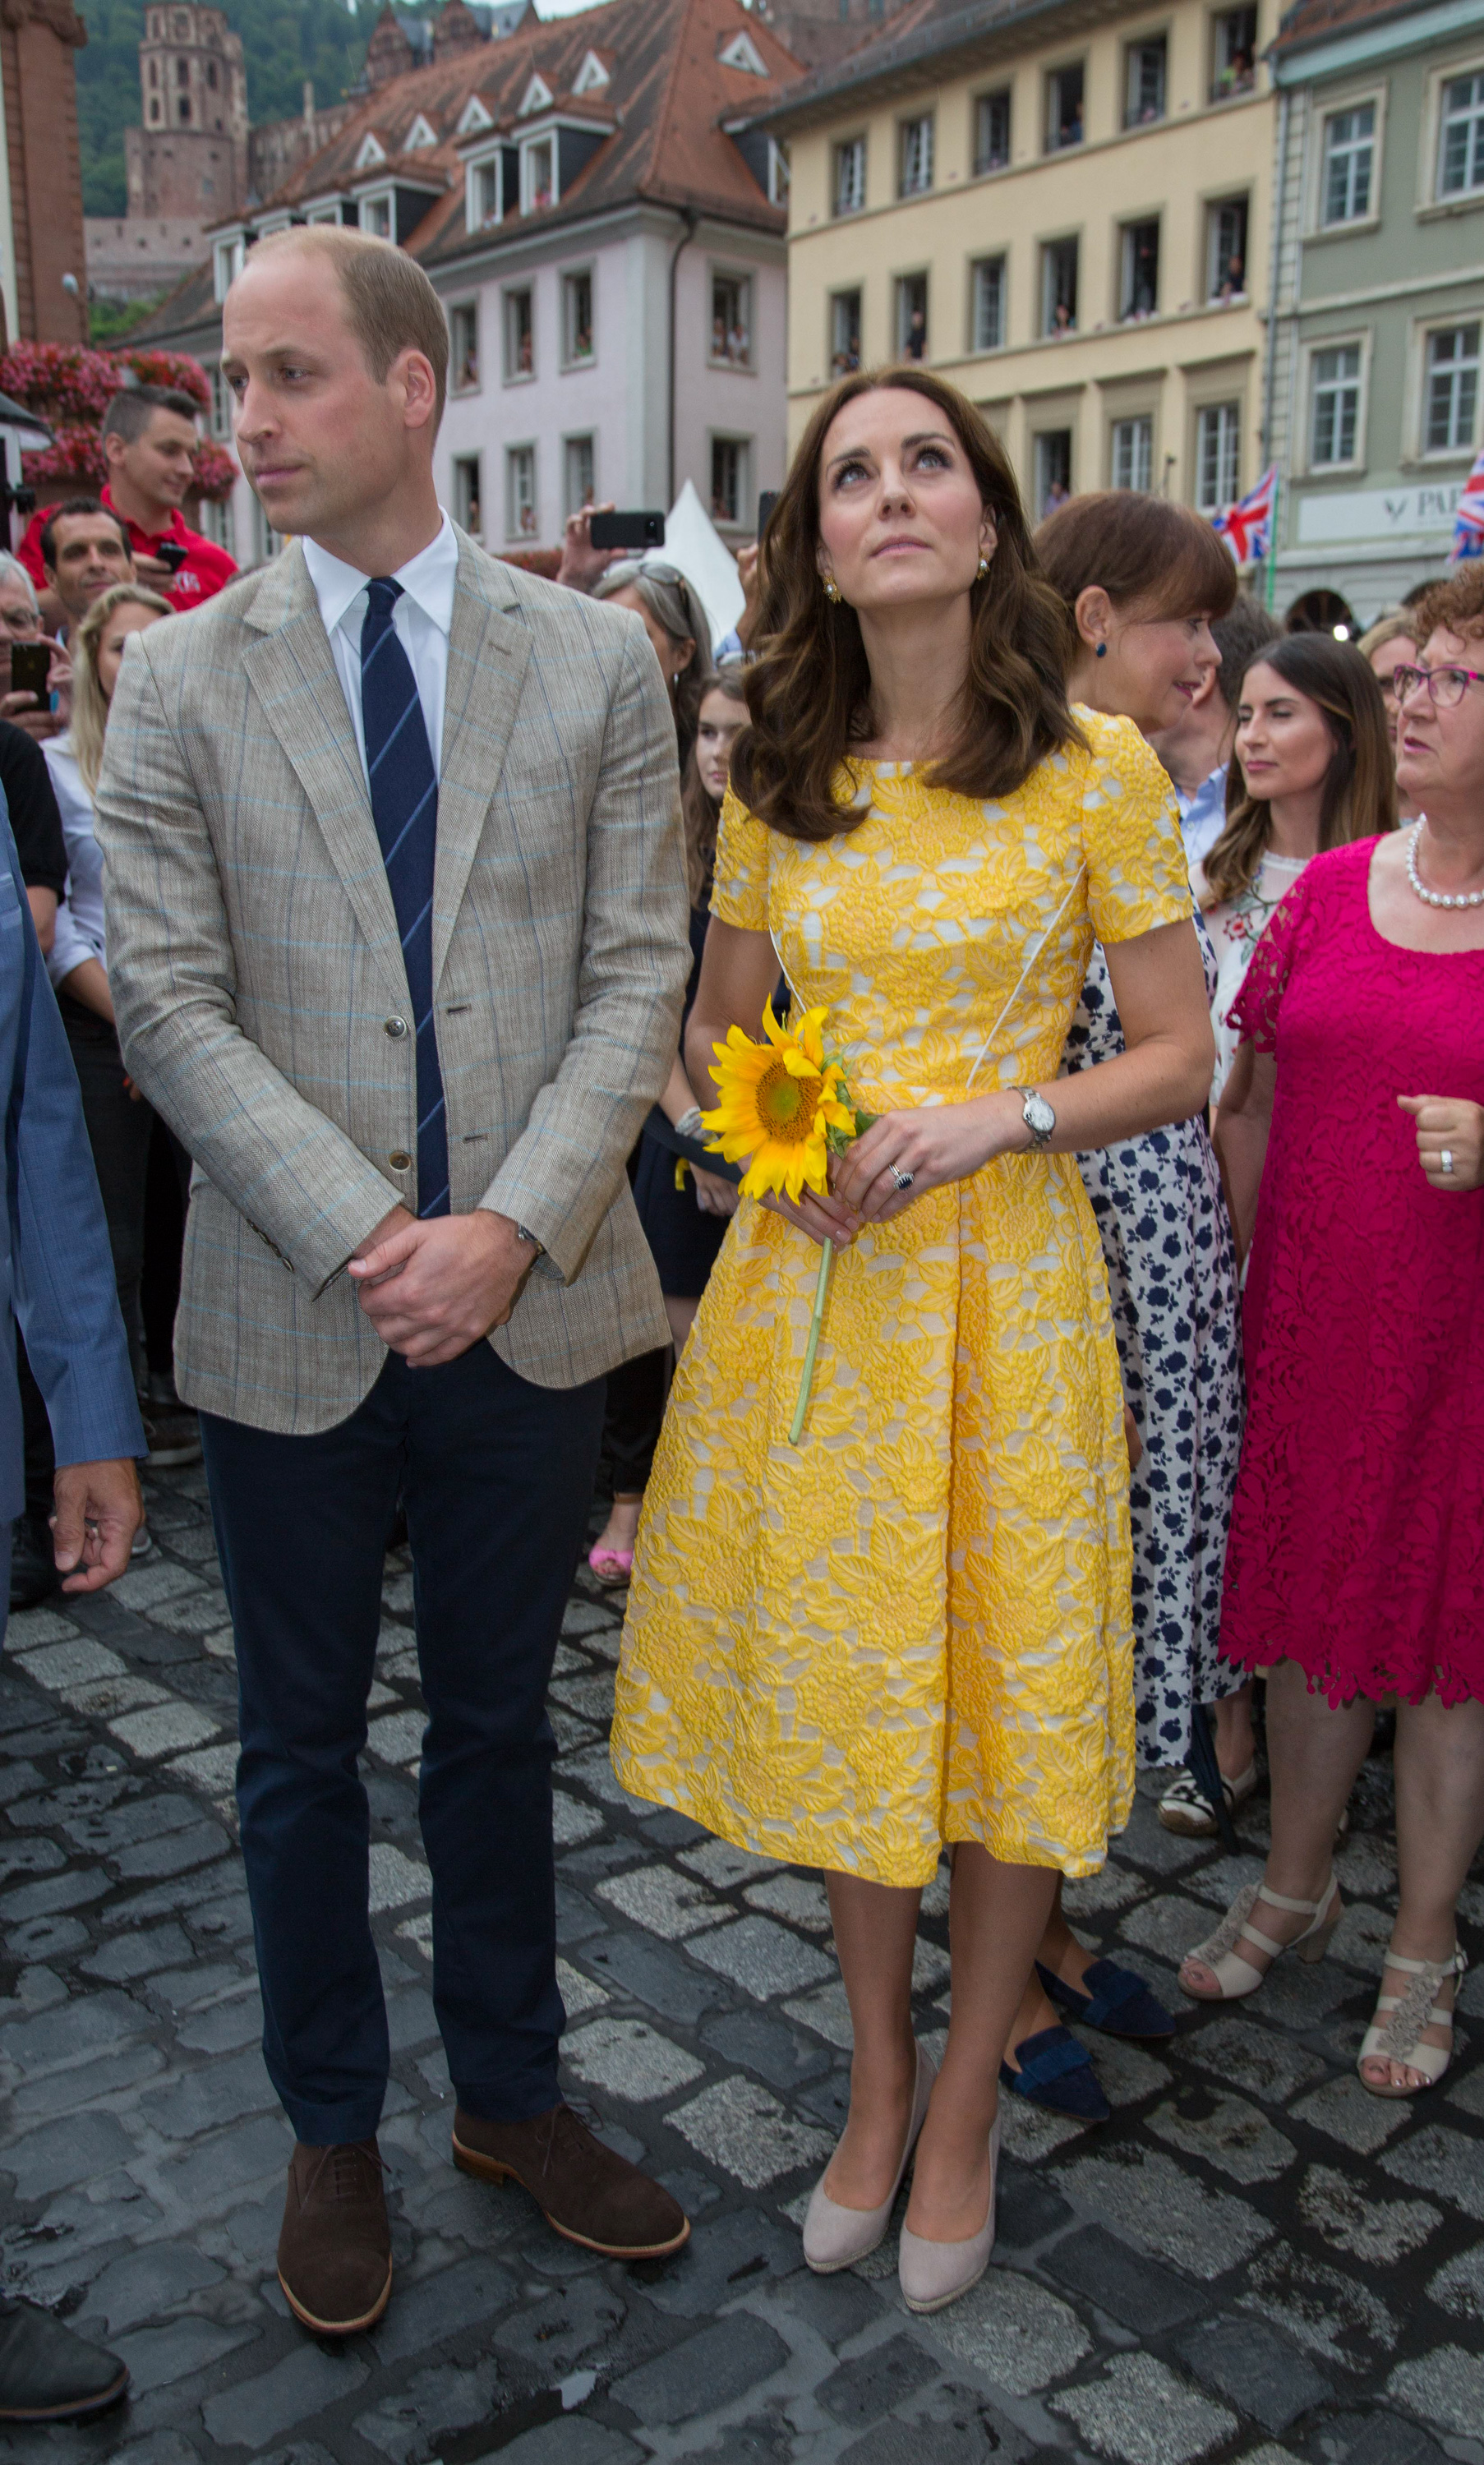 Prince William, Duke of Cambridge and Catherine, Duchess of Cambridge tour of a traditional German market in the Central Square during an official visit to Poland and Germany on July 20, 2017 in Heidelberg, Germany. (Photo by Pool/Samir Hussein/WireImage)